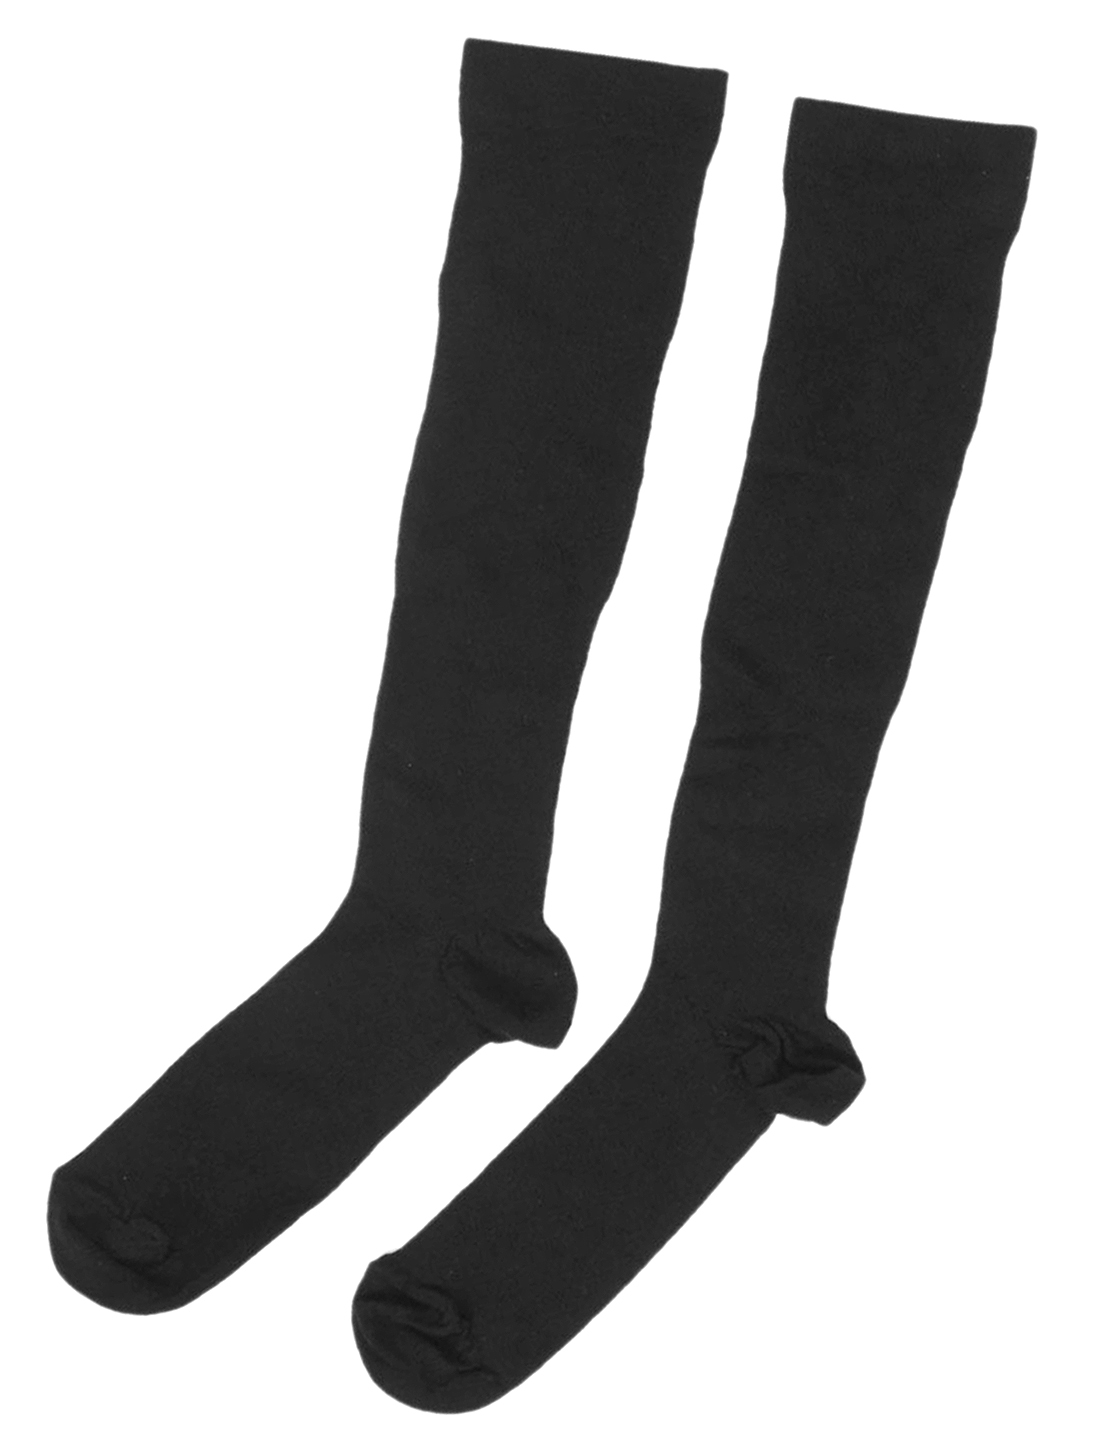 Pair Women Black Elastic Cuff Knee High Warm Leg Slimming Socks Size XS